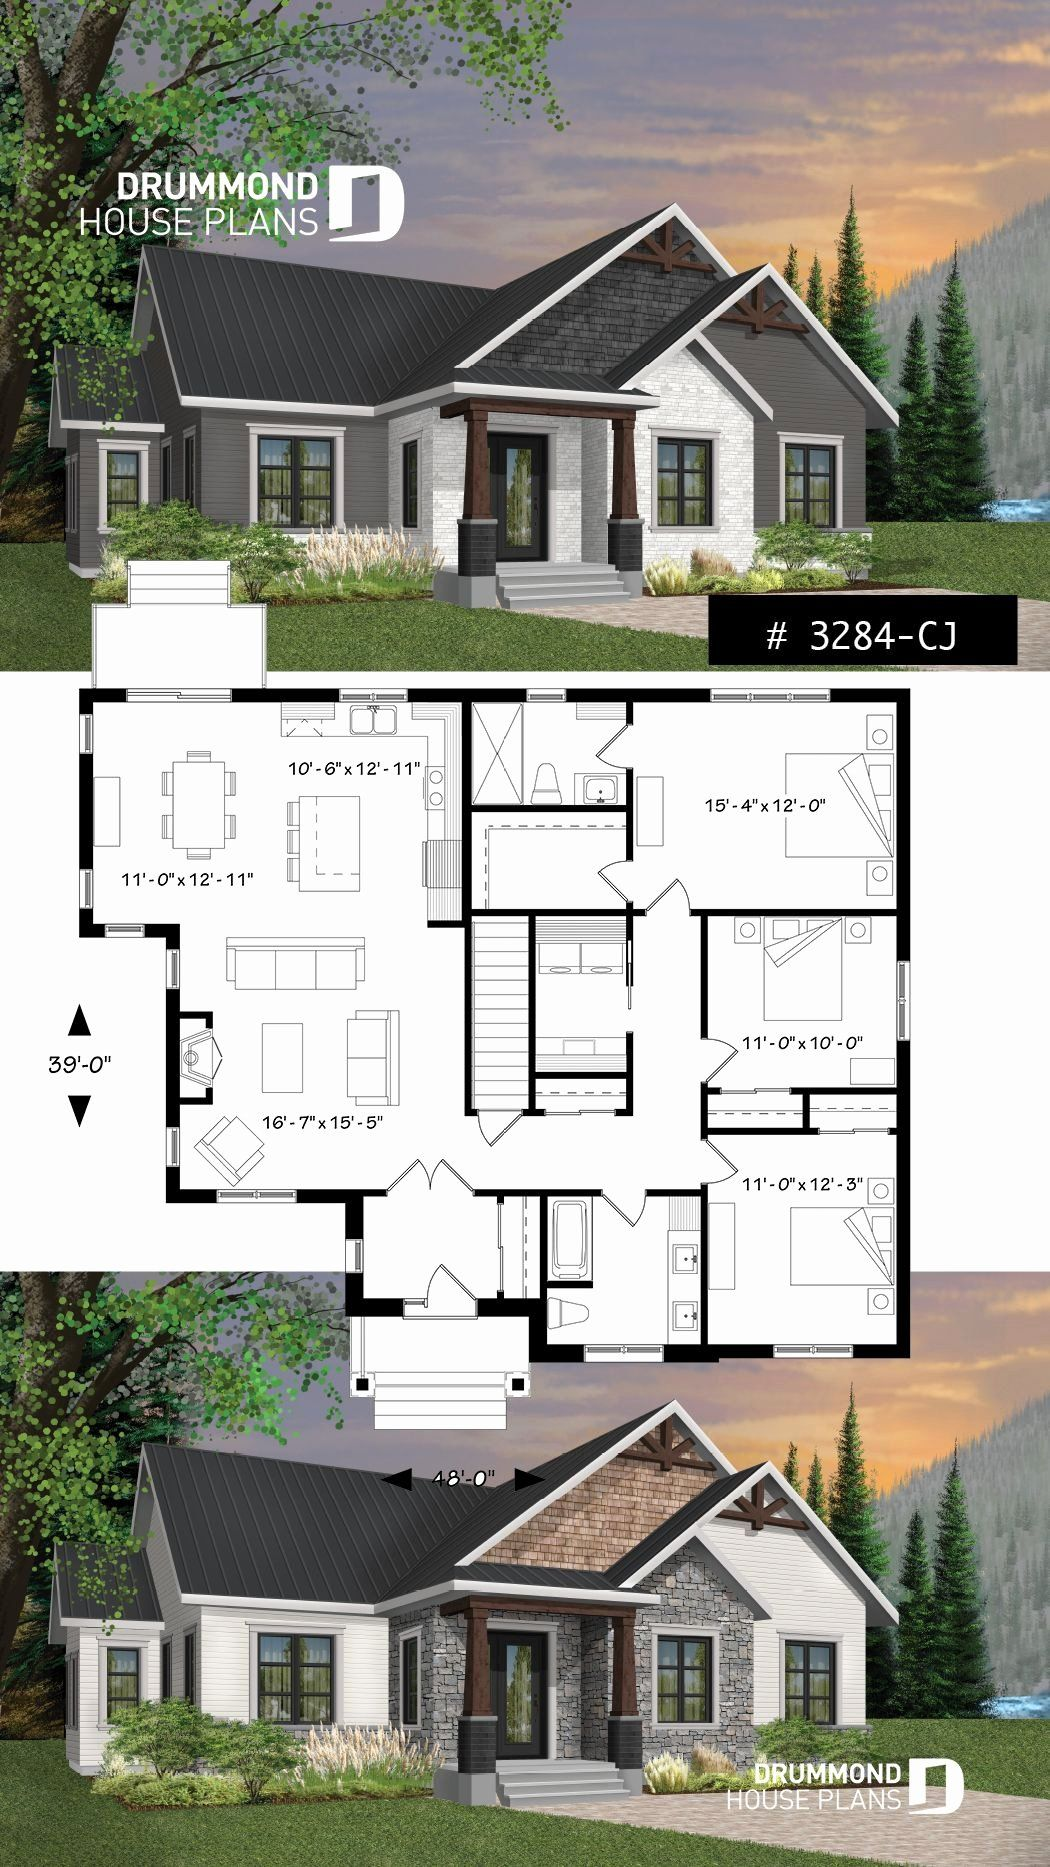 Bloxburg 3 Story Modern House Unique House Plan Providence 1 No 3284 Cj In 2020 Craftsman House Plans House Plans House Exterior